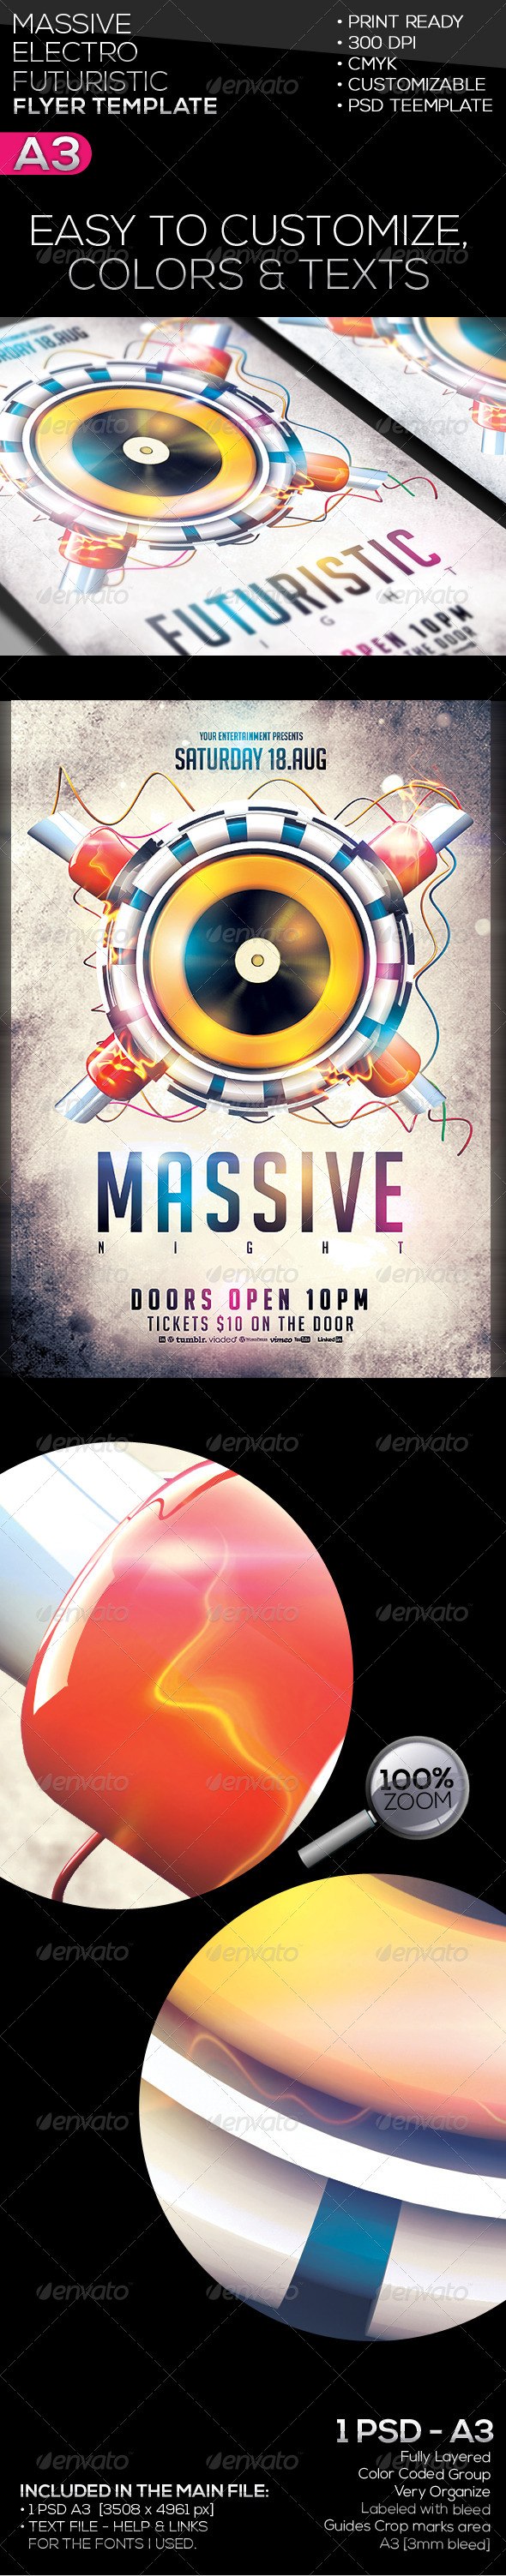 Massive | Futuristic | Electro Flyer Template - Clubs & Parties Events